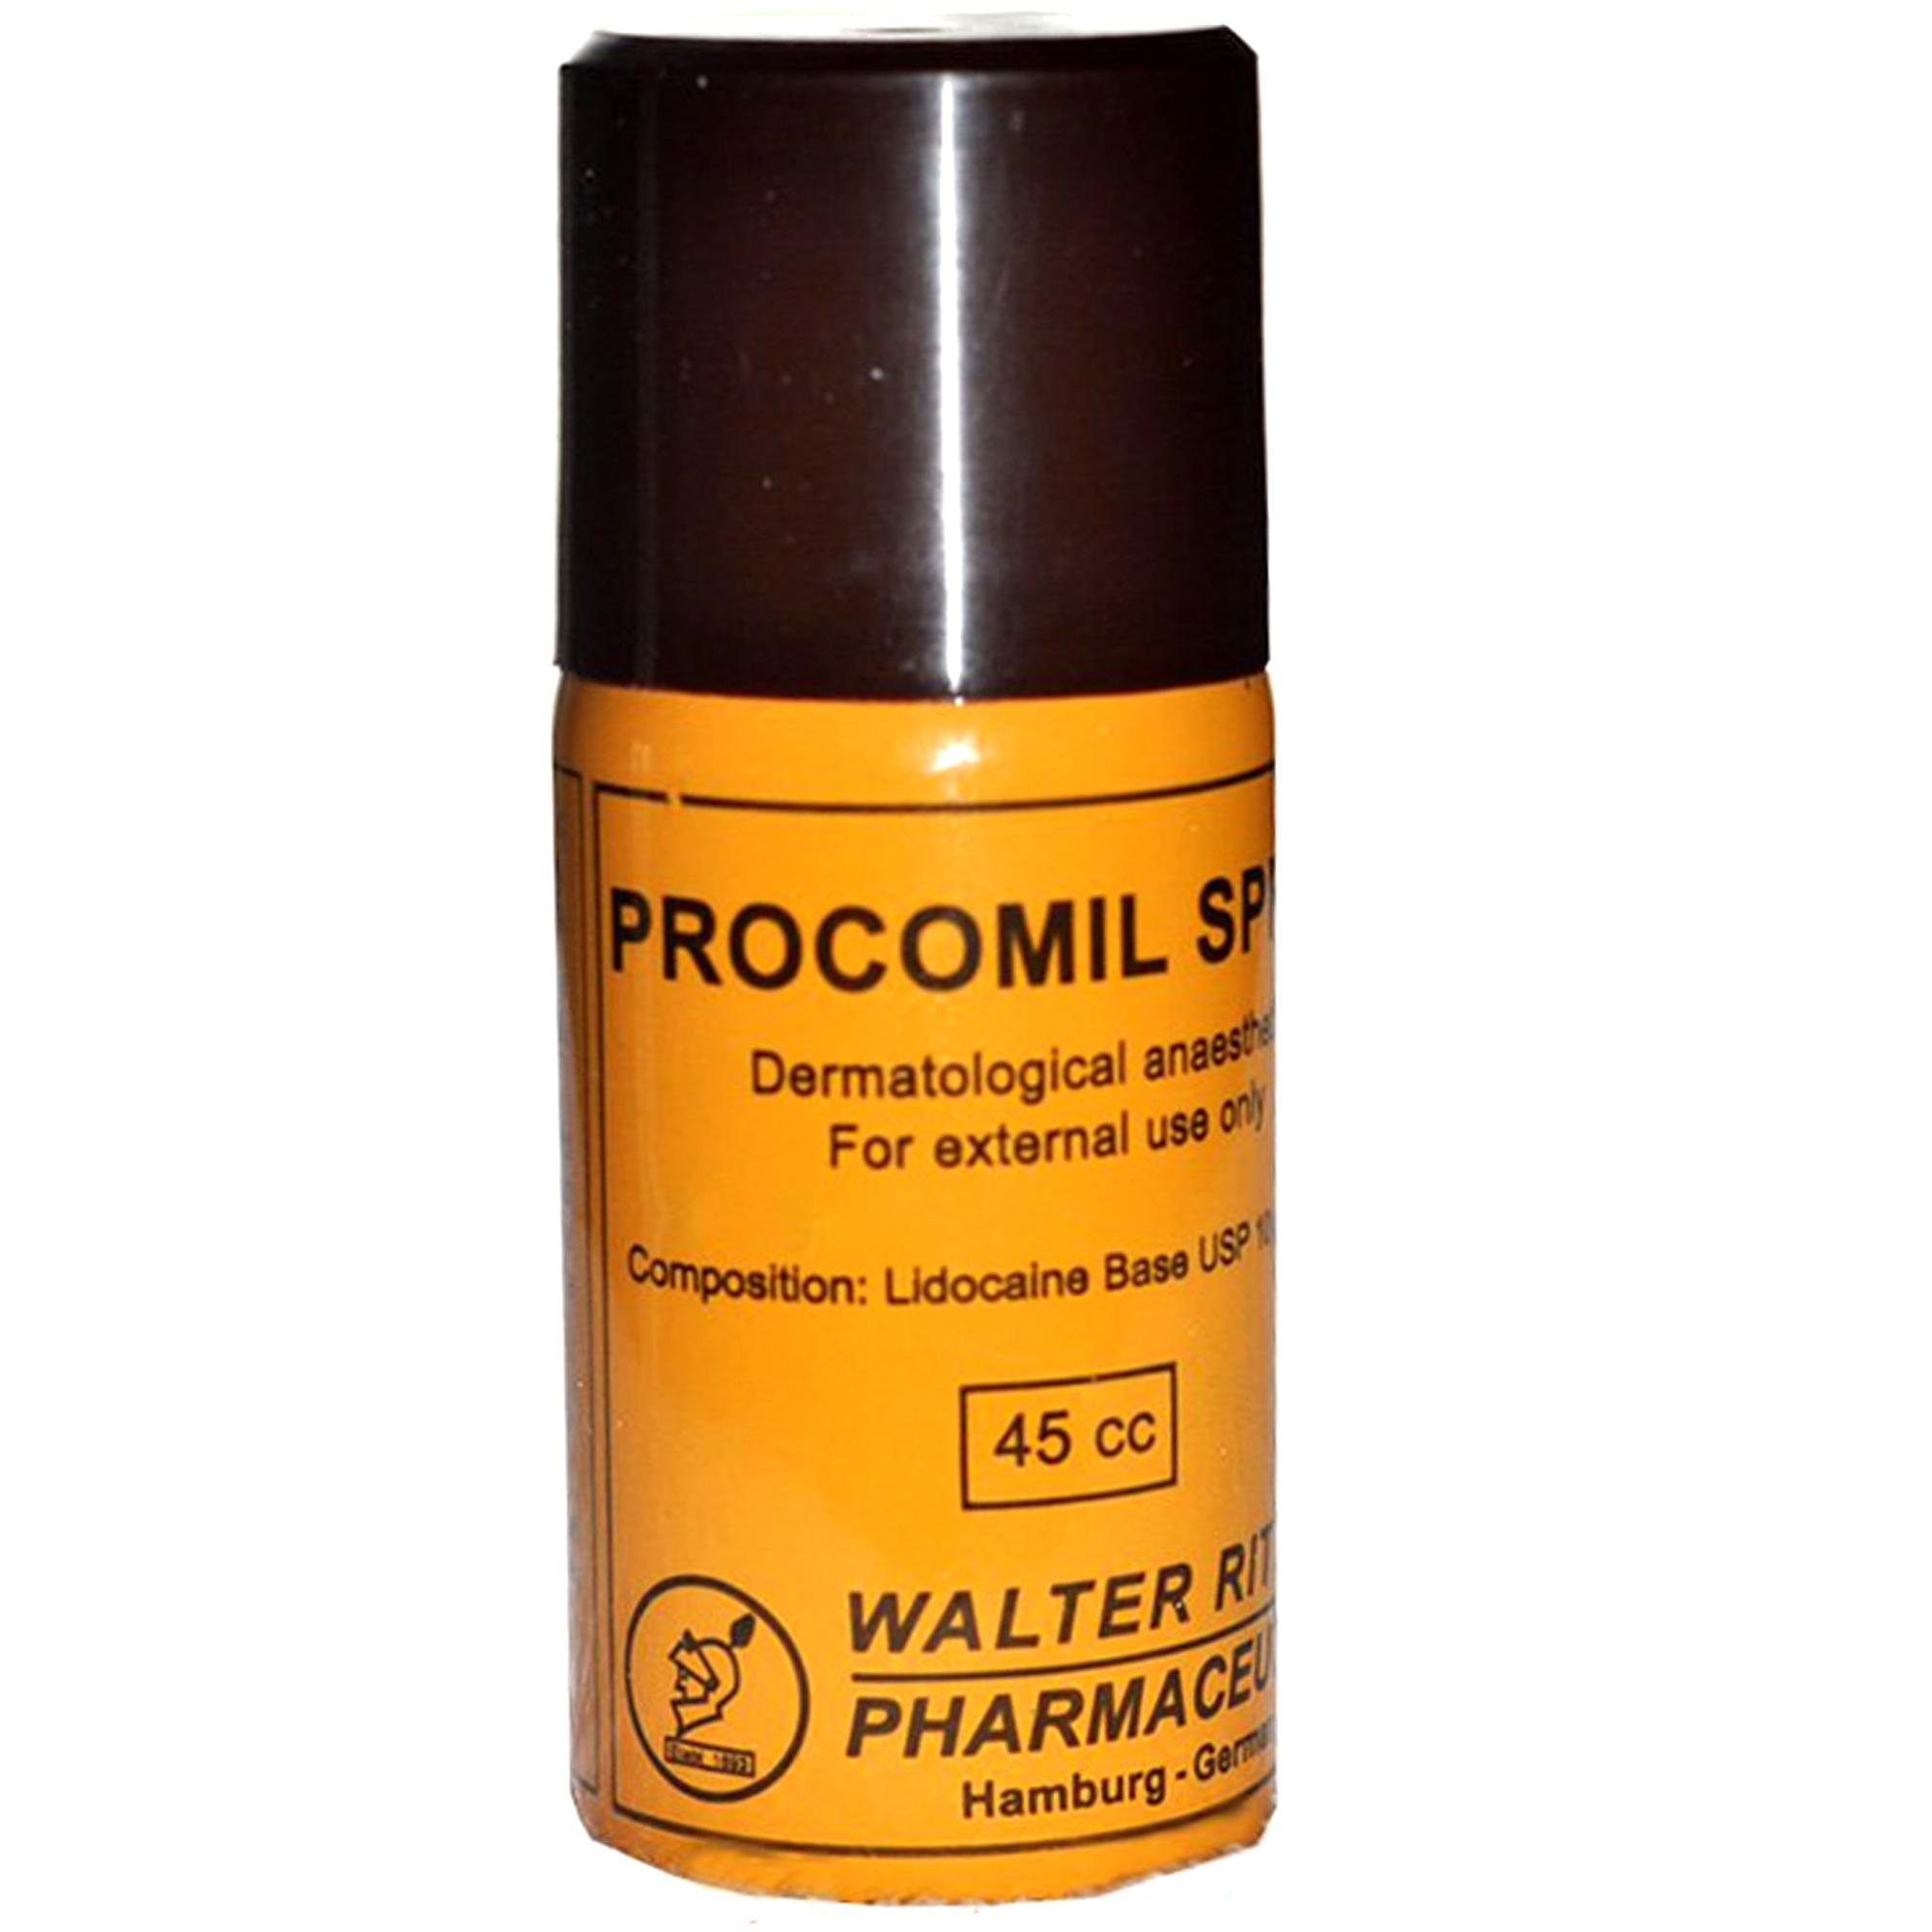 1149_Procomil Spray Sex Products for Men